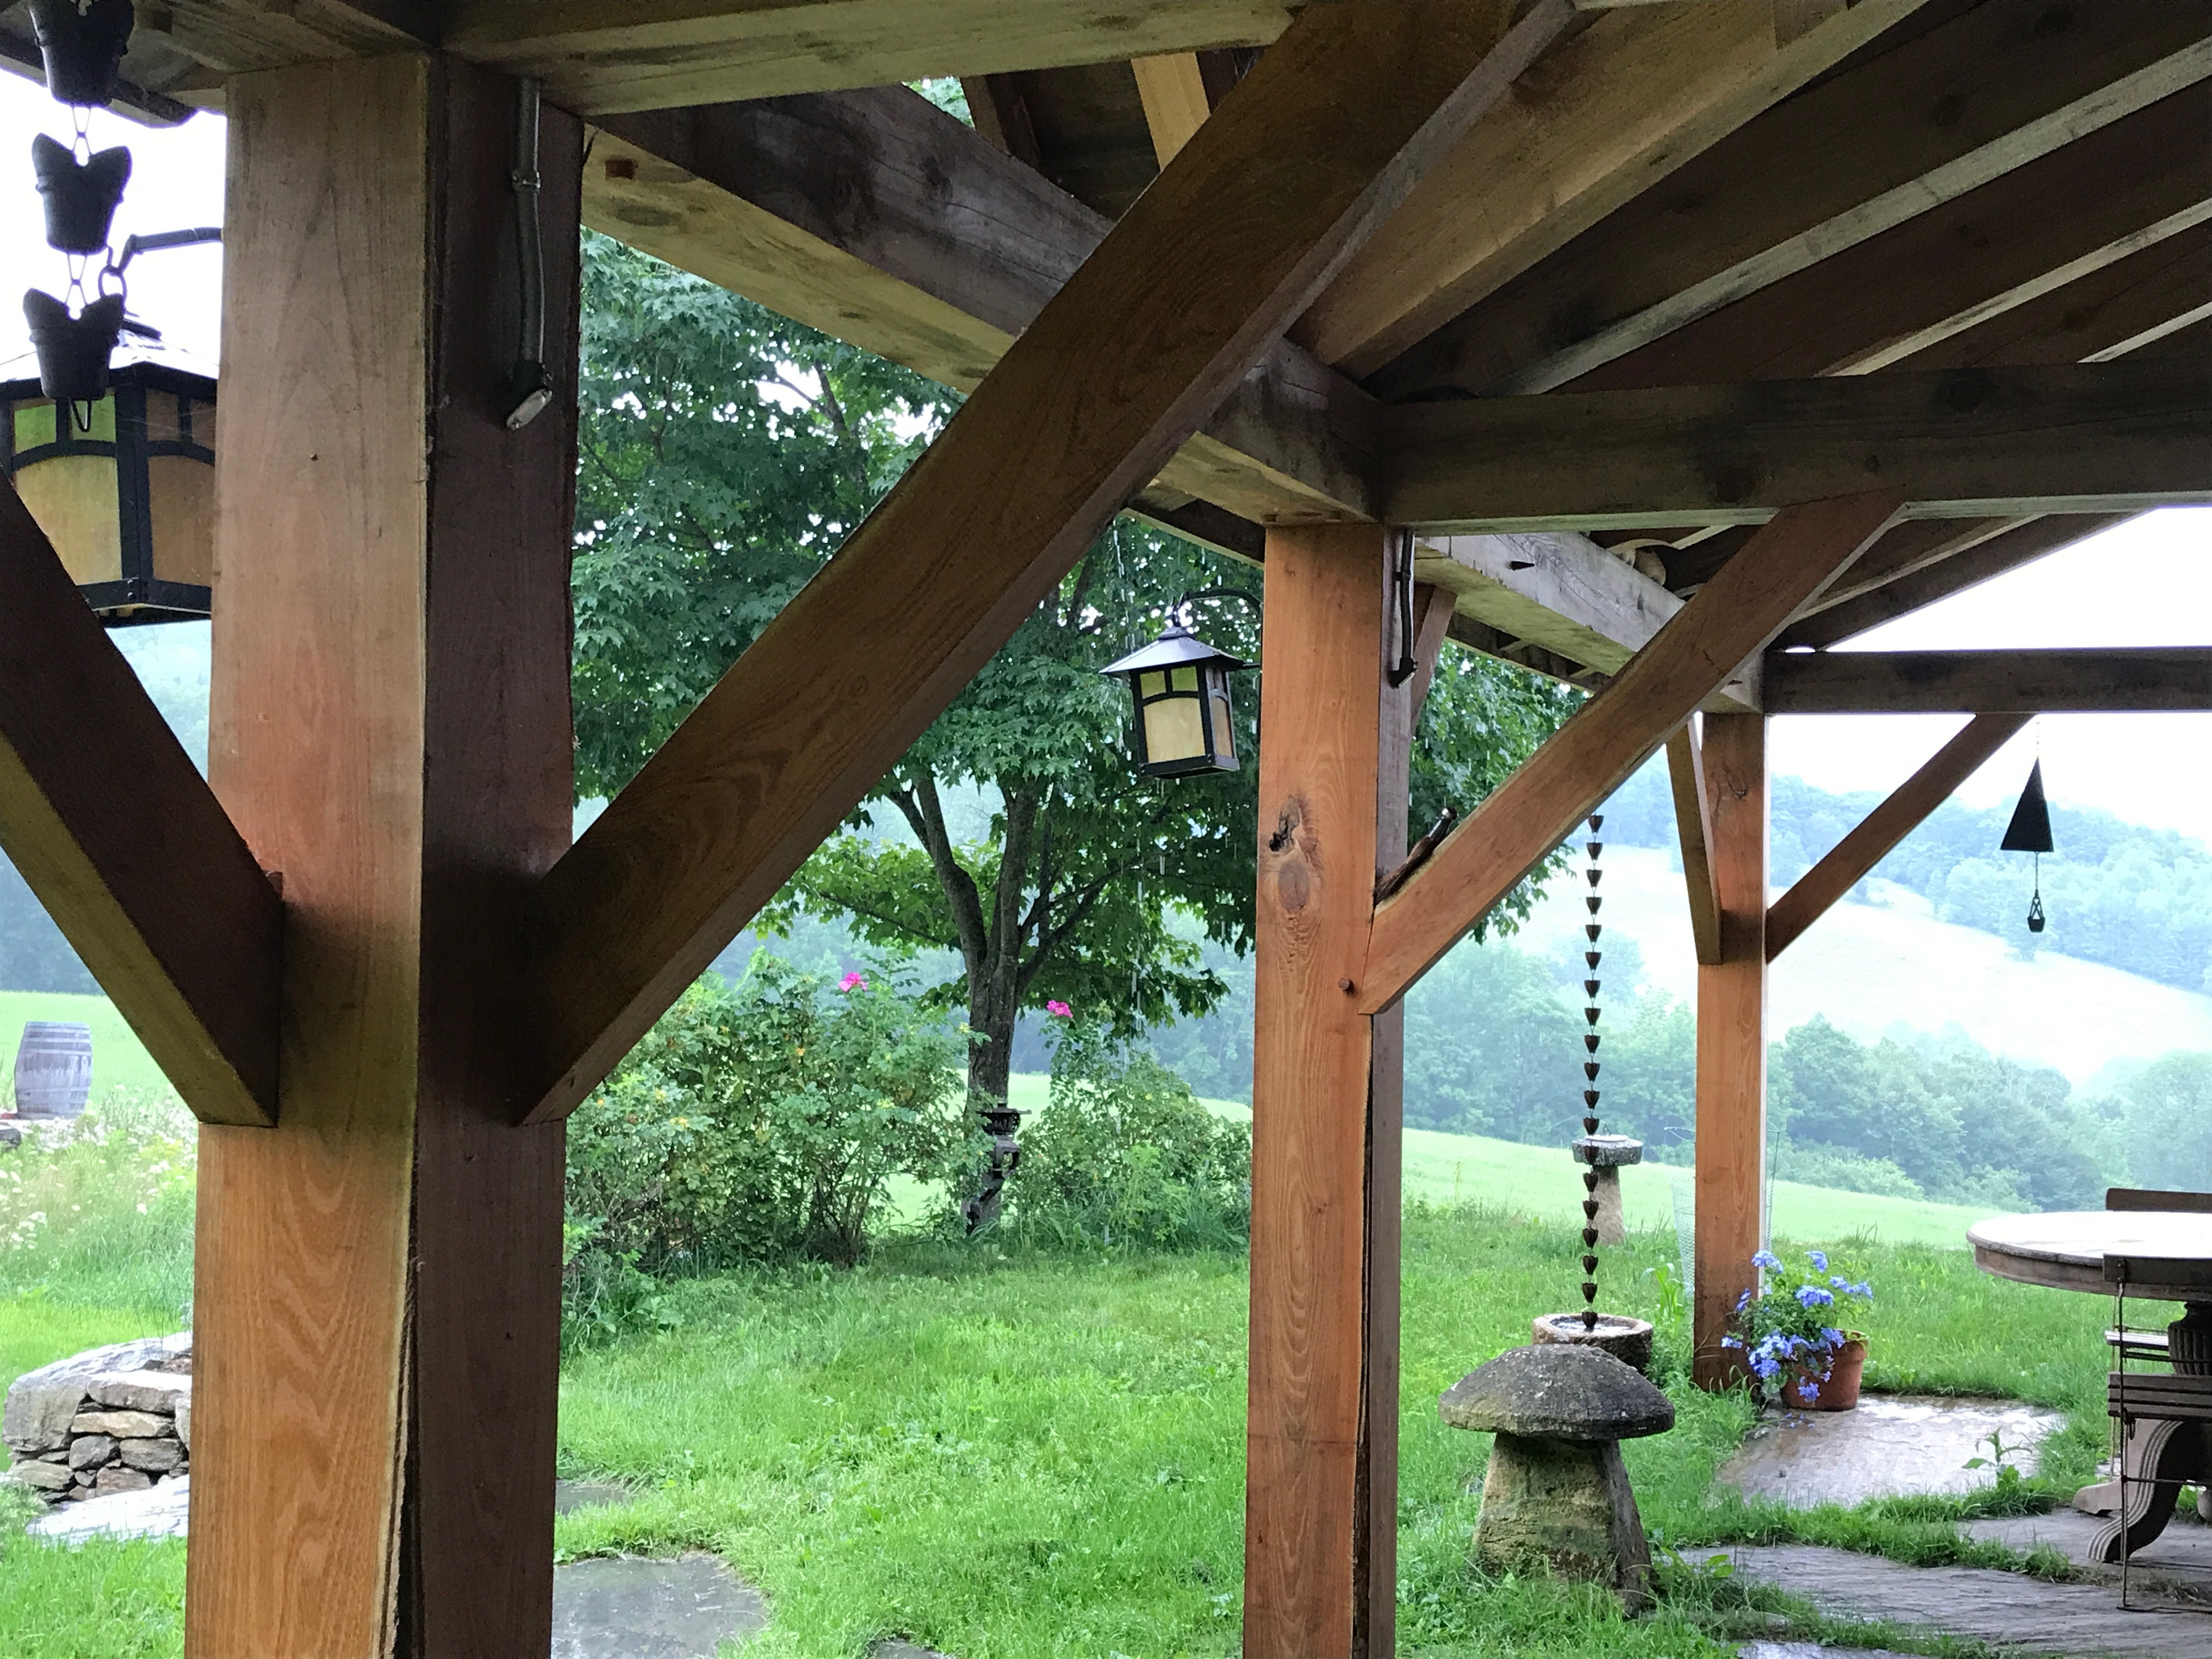 timber frame porch in Vermont Green Mountains